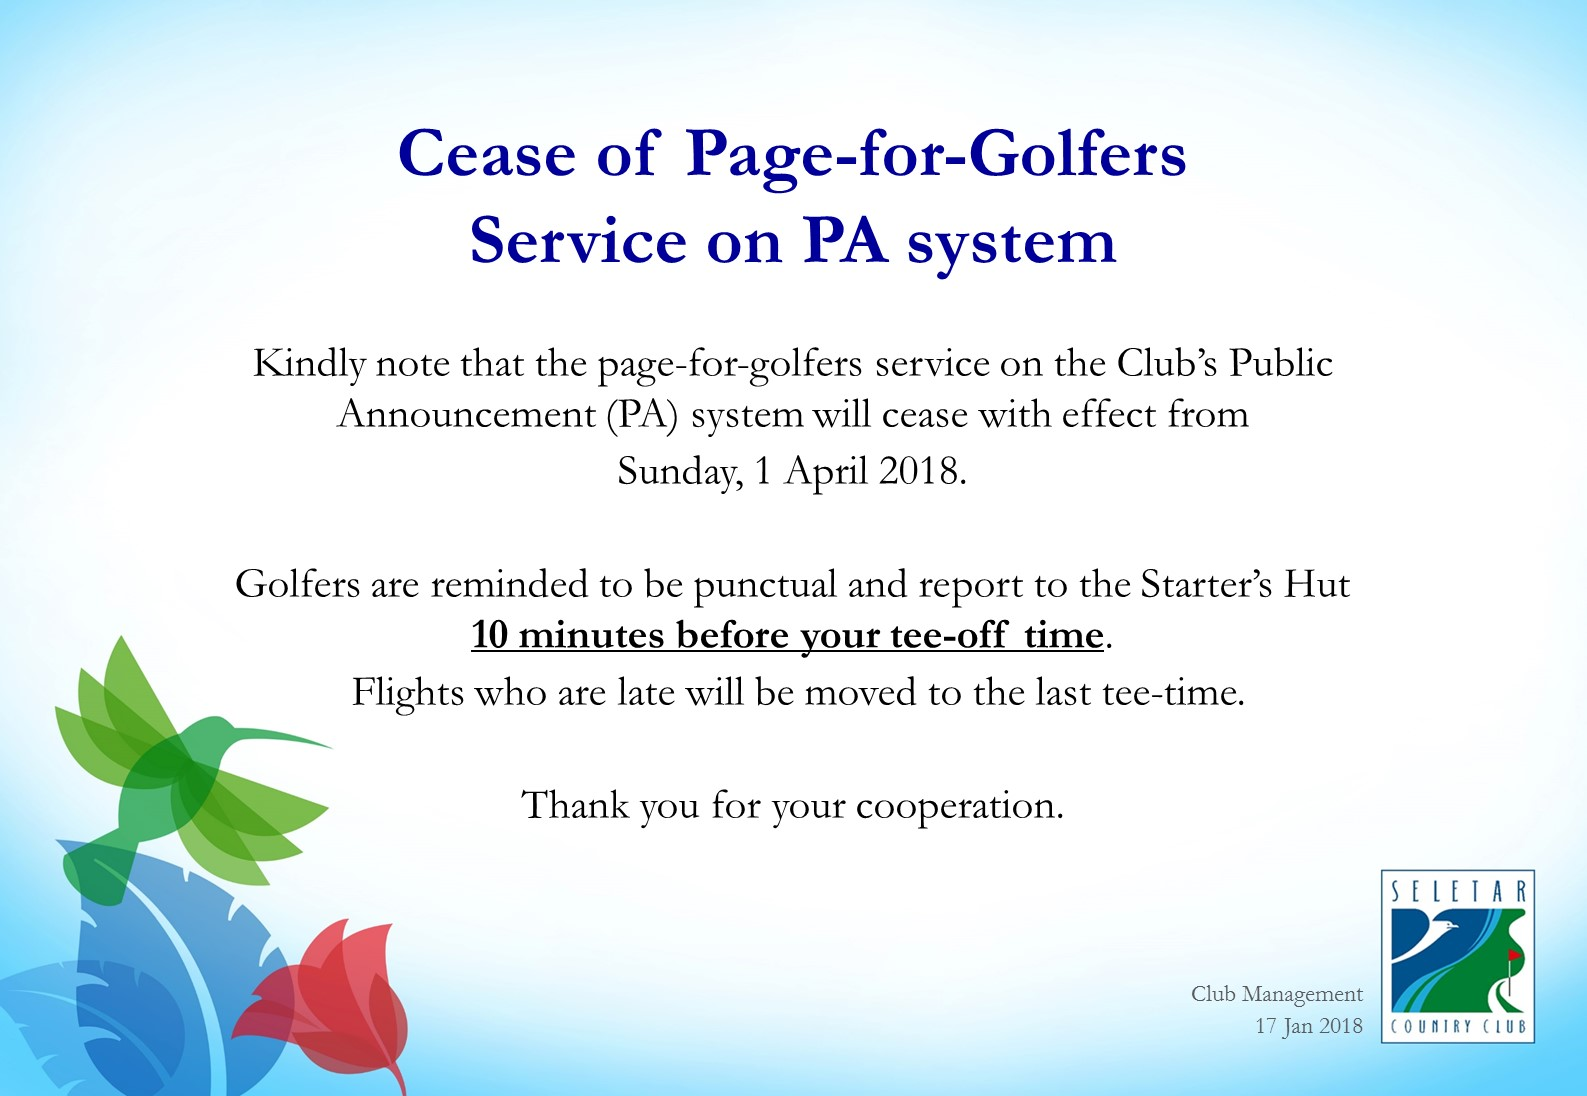 Cease of Paging for Golfers Service_V2